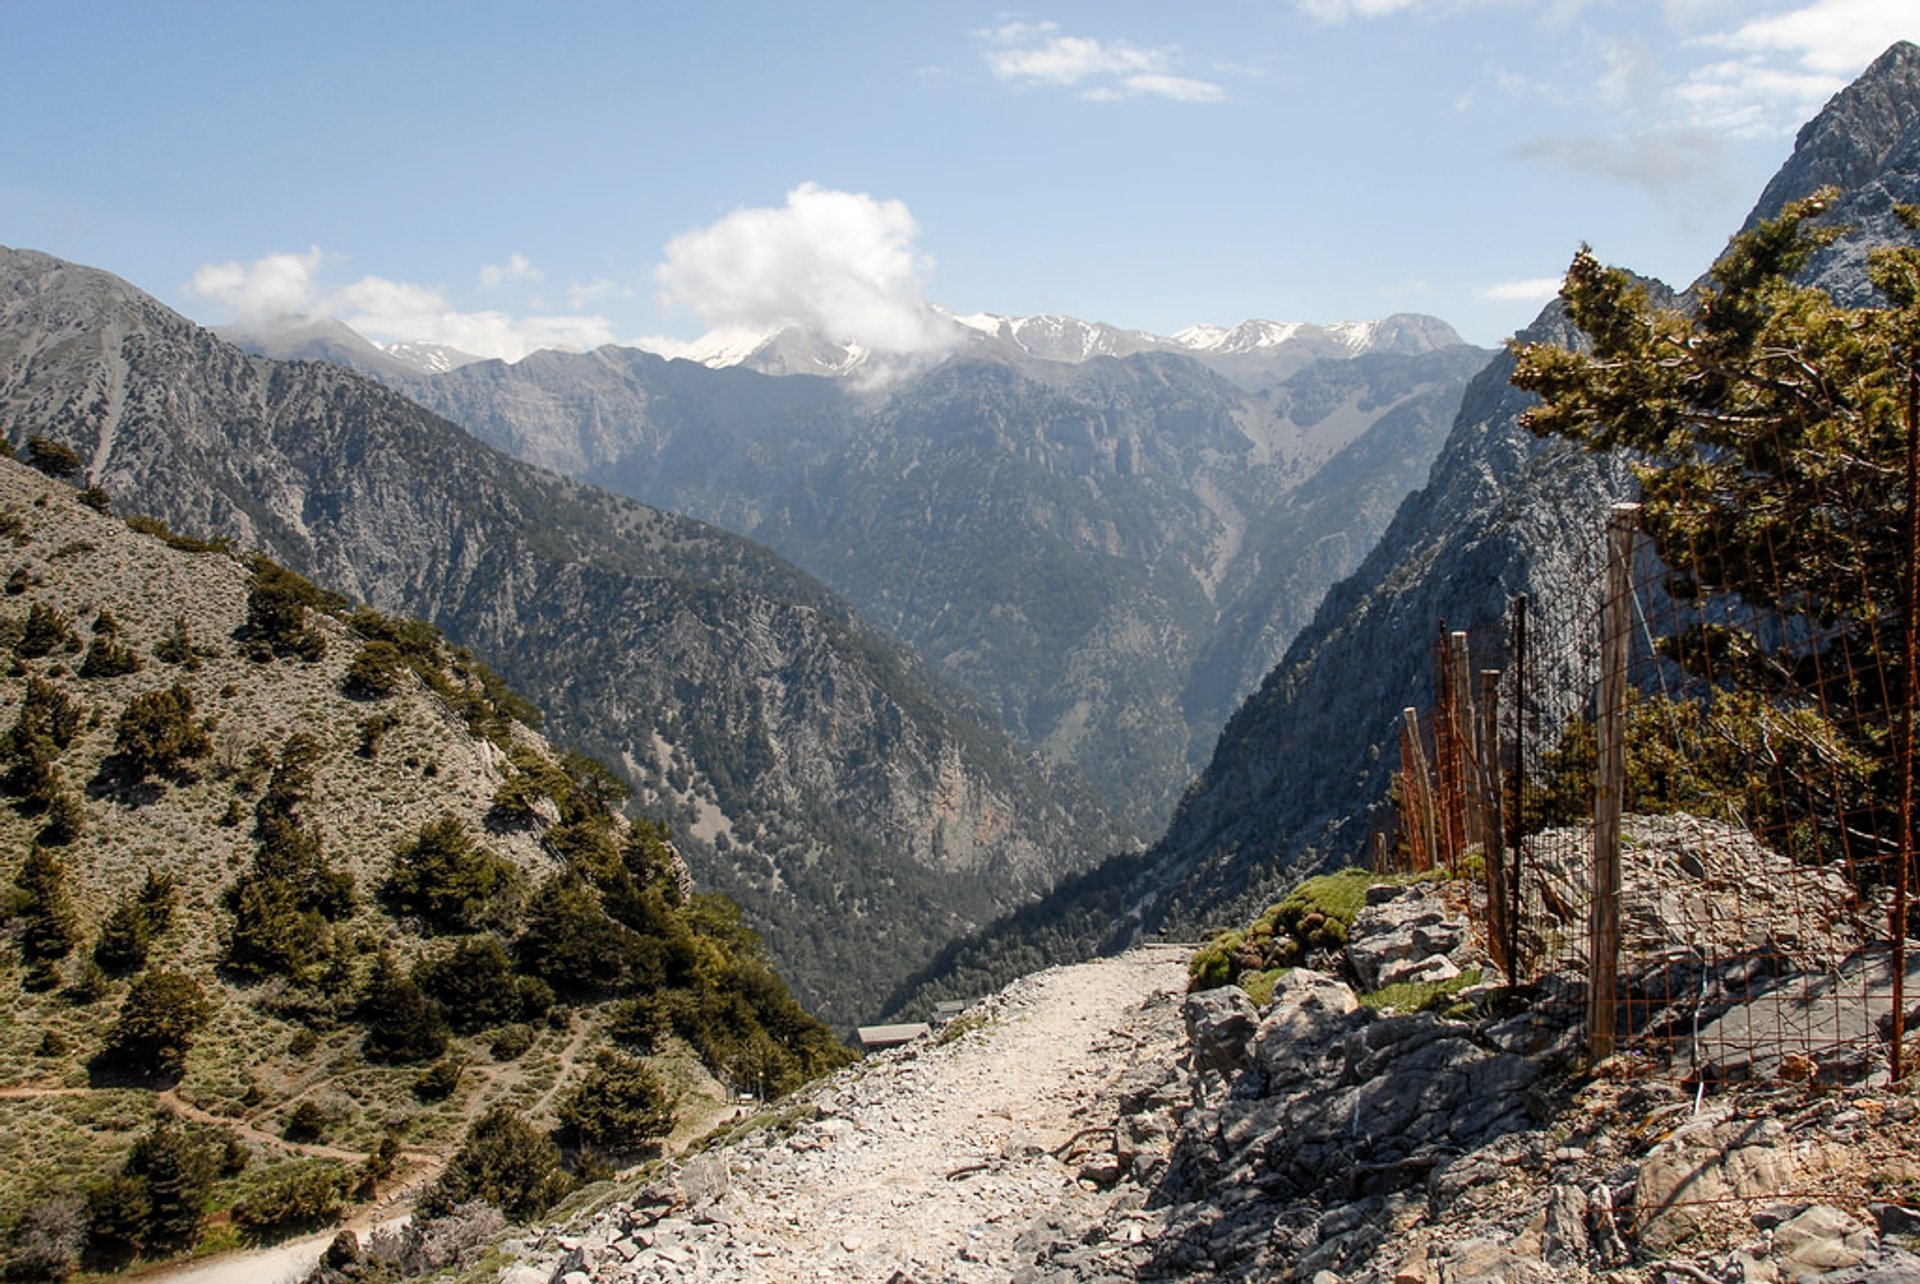 Hiking in Samaria Gorge National Park in Crete 2020 - Best Time